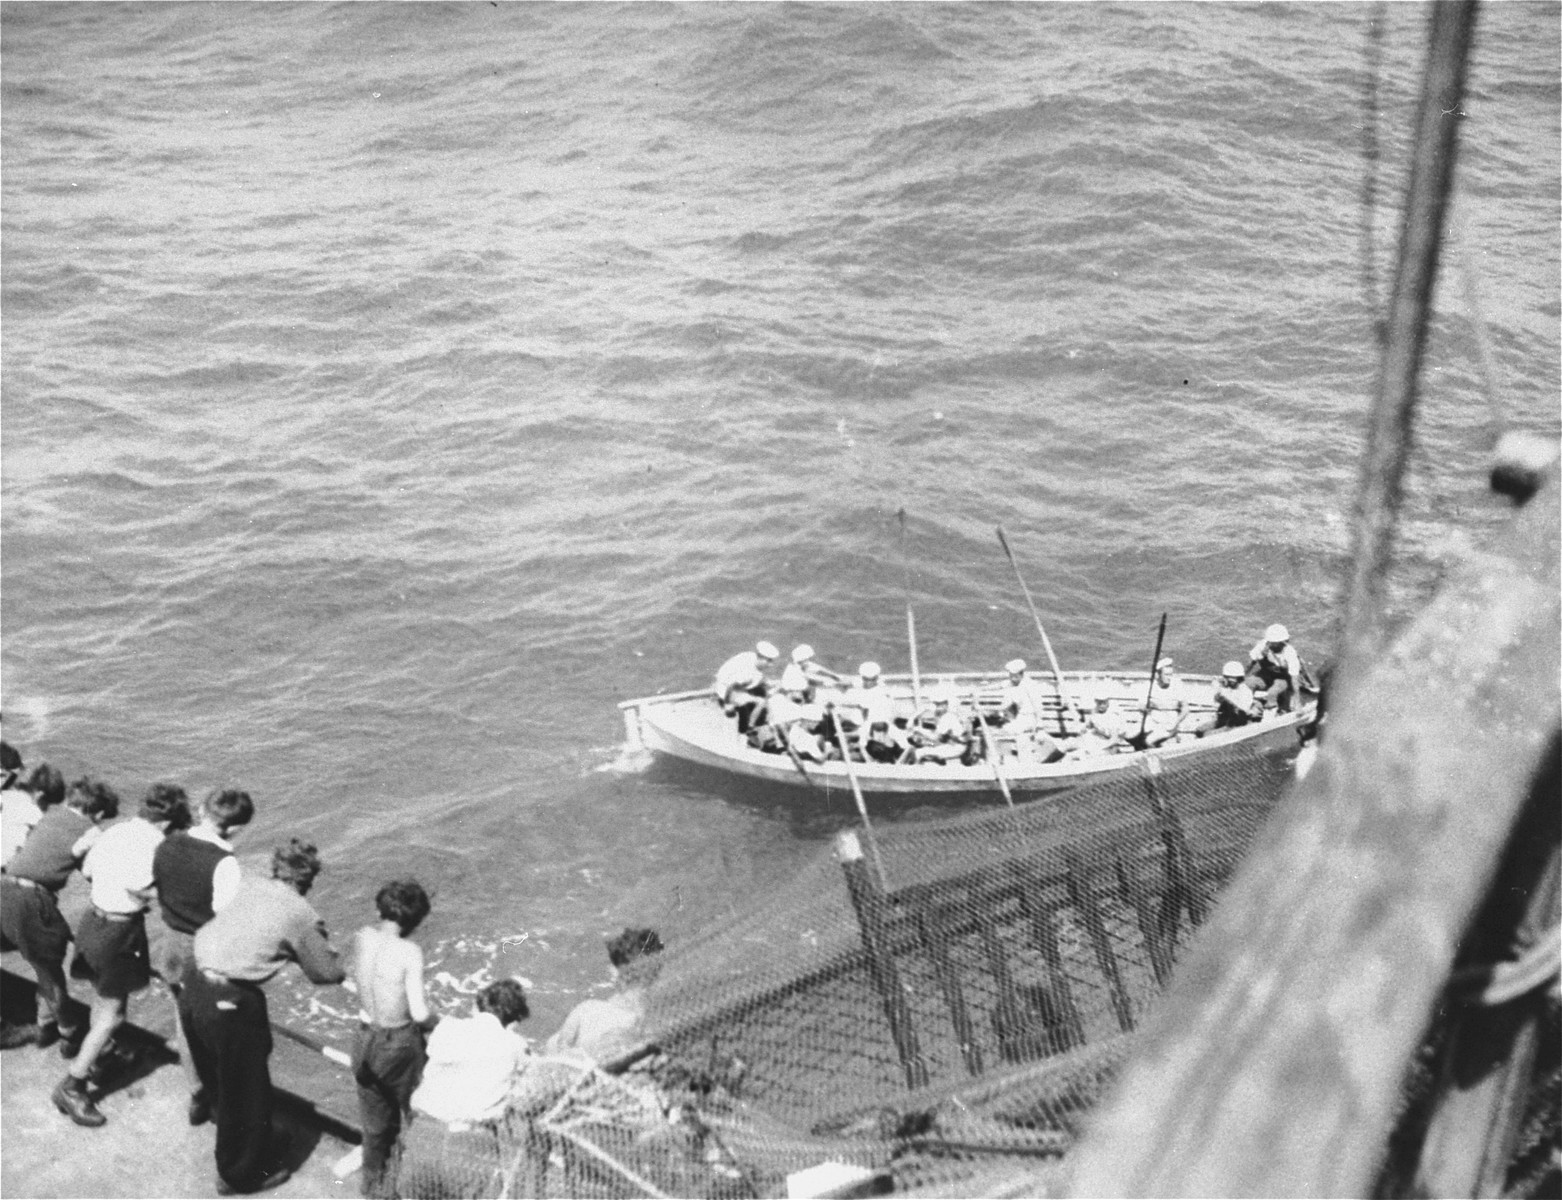 Passengers aboard the Exodus 1947 watch as the boarding party from the British destroyer, H.M.S. Ajax, approaches the illegal immigrant ship.